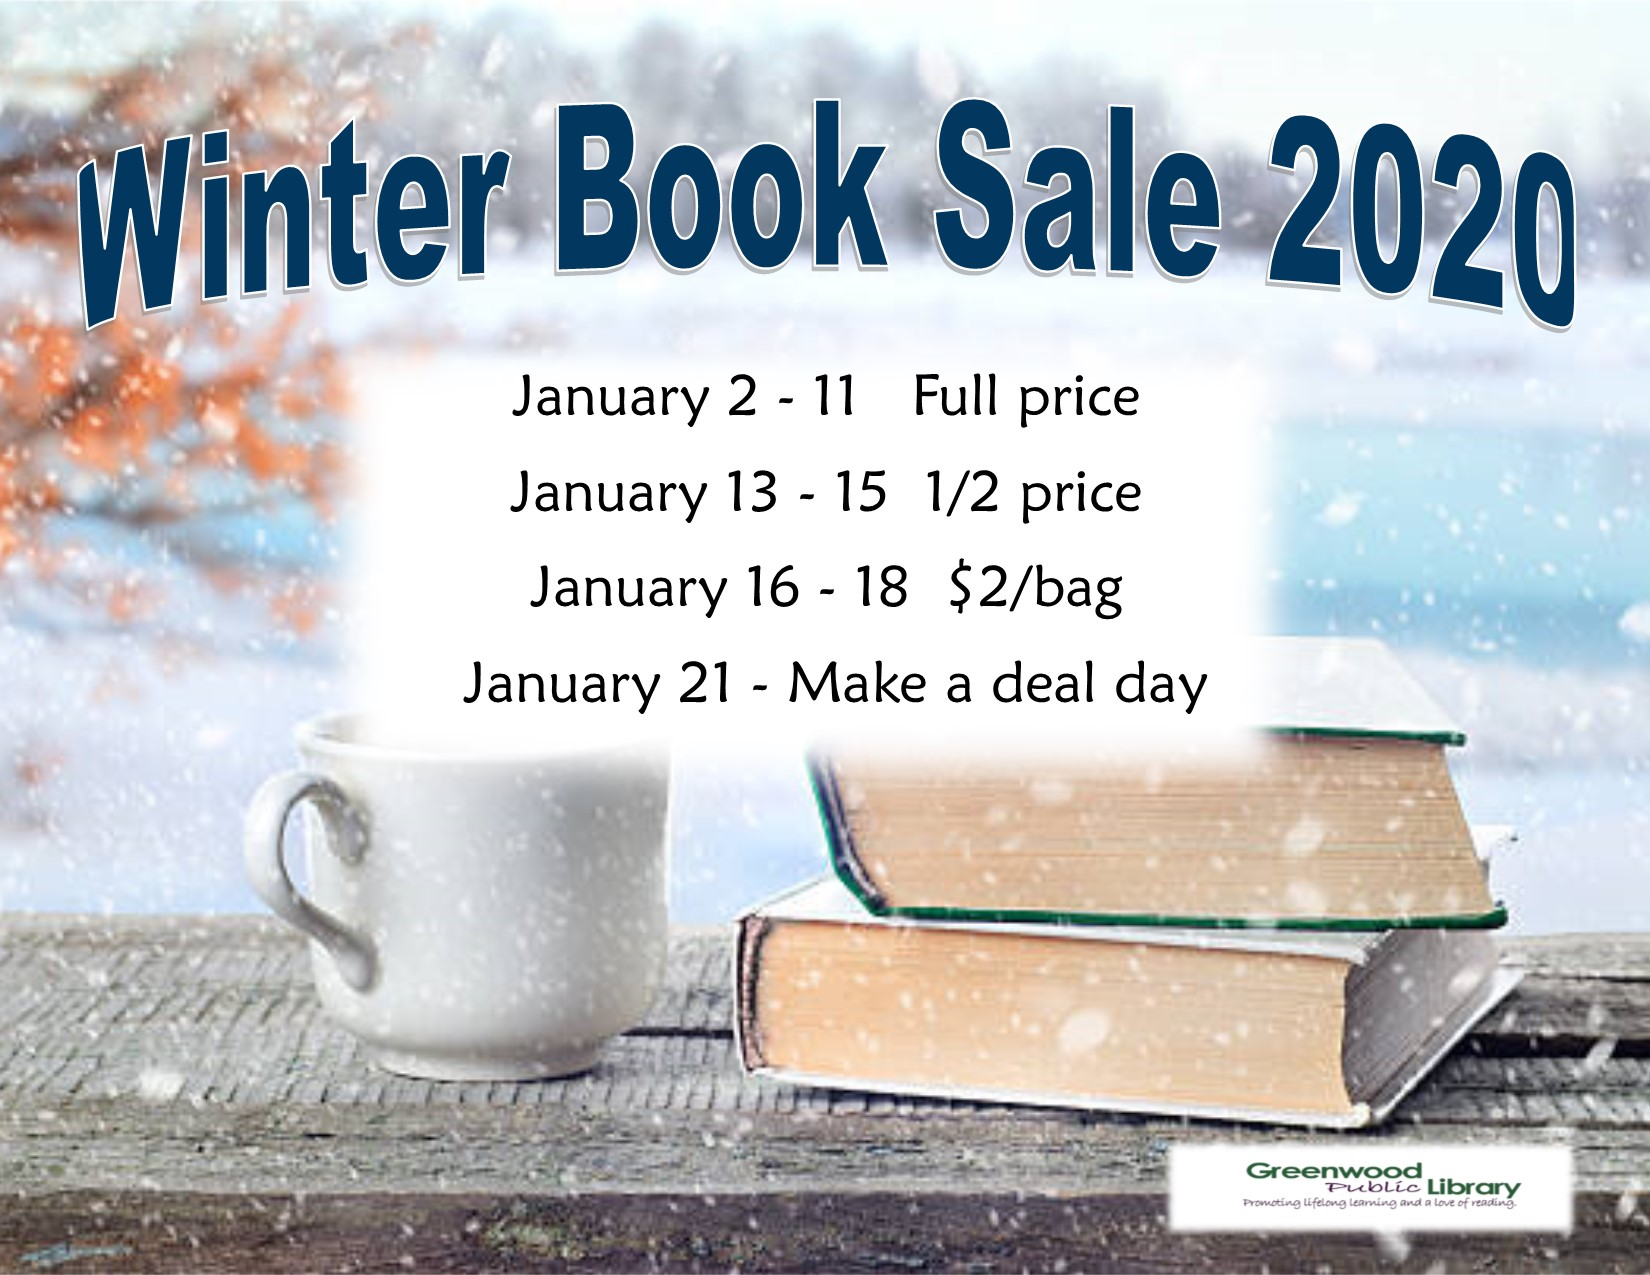 CANCELLED - Winter Book Sale